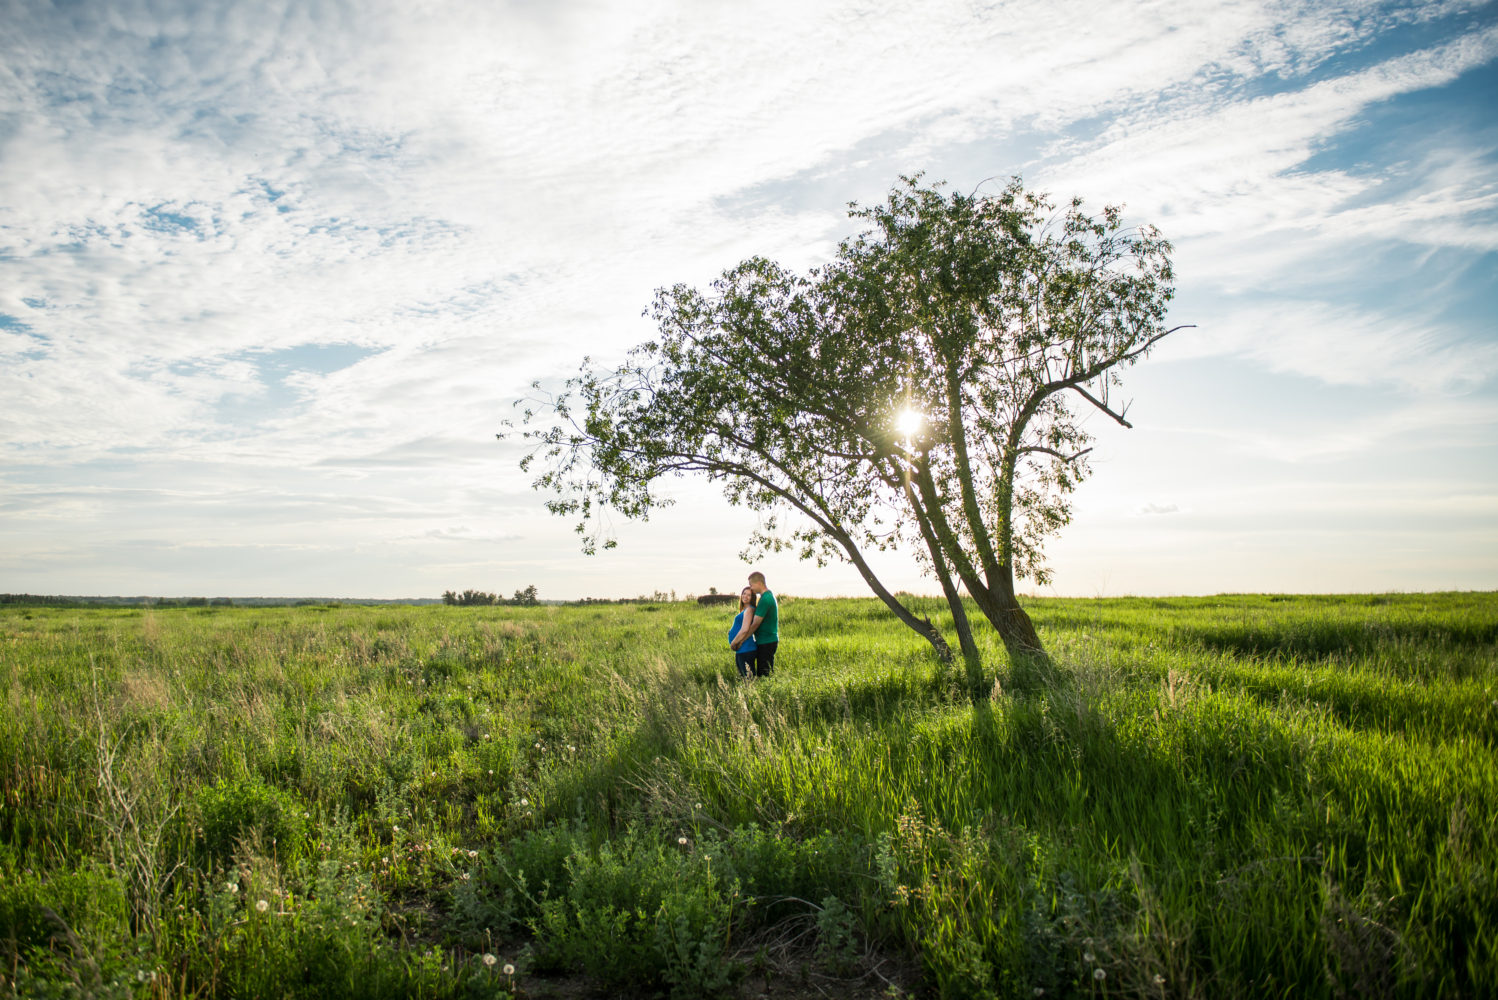 Beautiful maternity session in the summer with blue skies and a dramatic tree